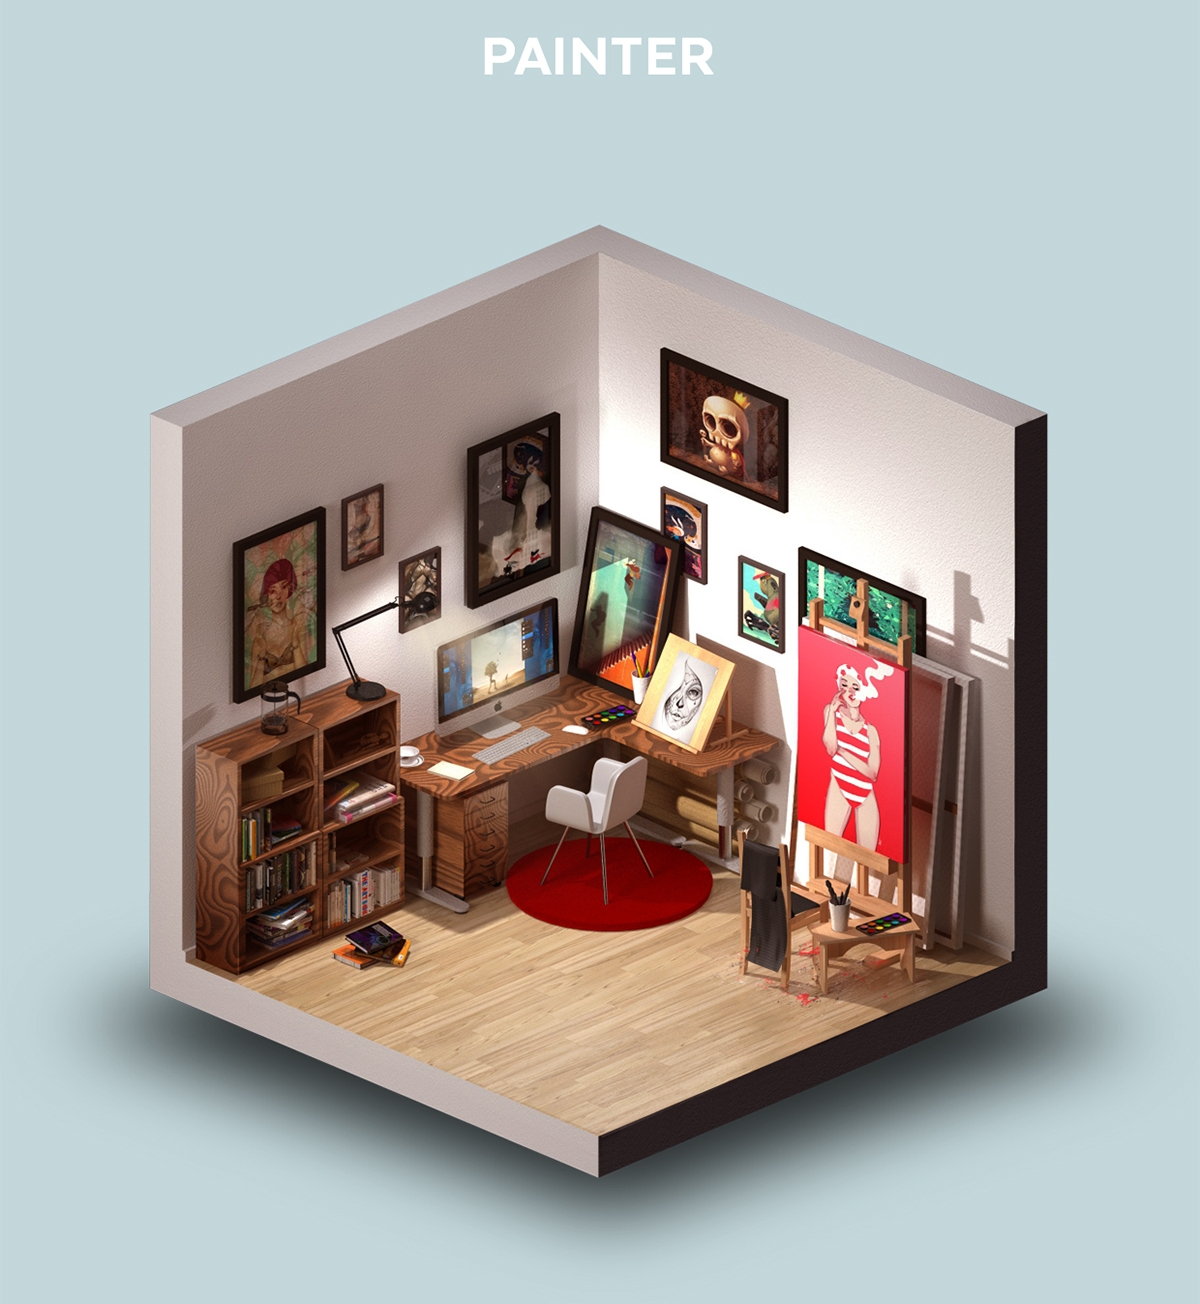 03-Room-of-a-Painter-Petr-Kollarcik-Digital-Interiors-Design-and-Modern-Nomads-illustrations-www-designstack-co